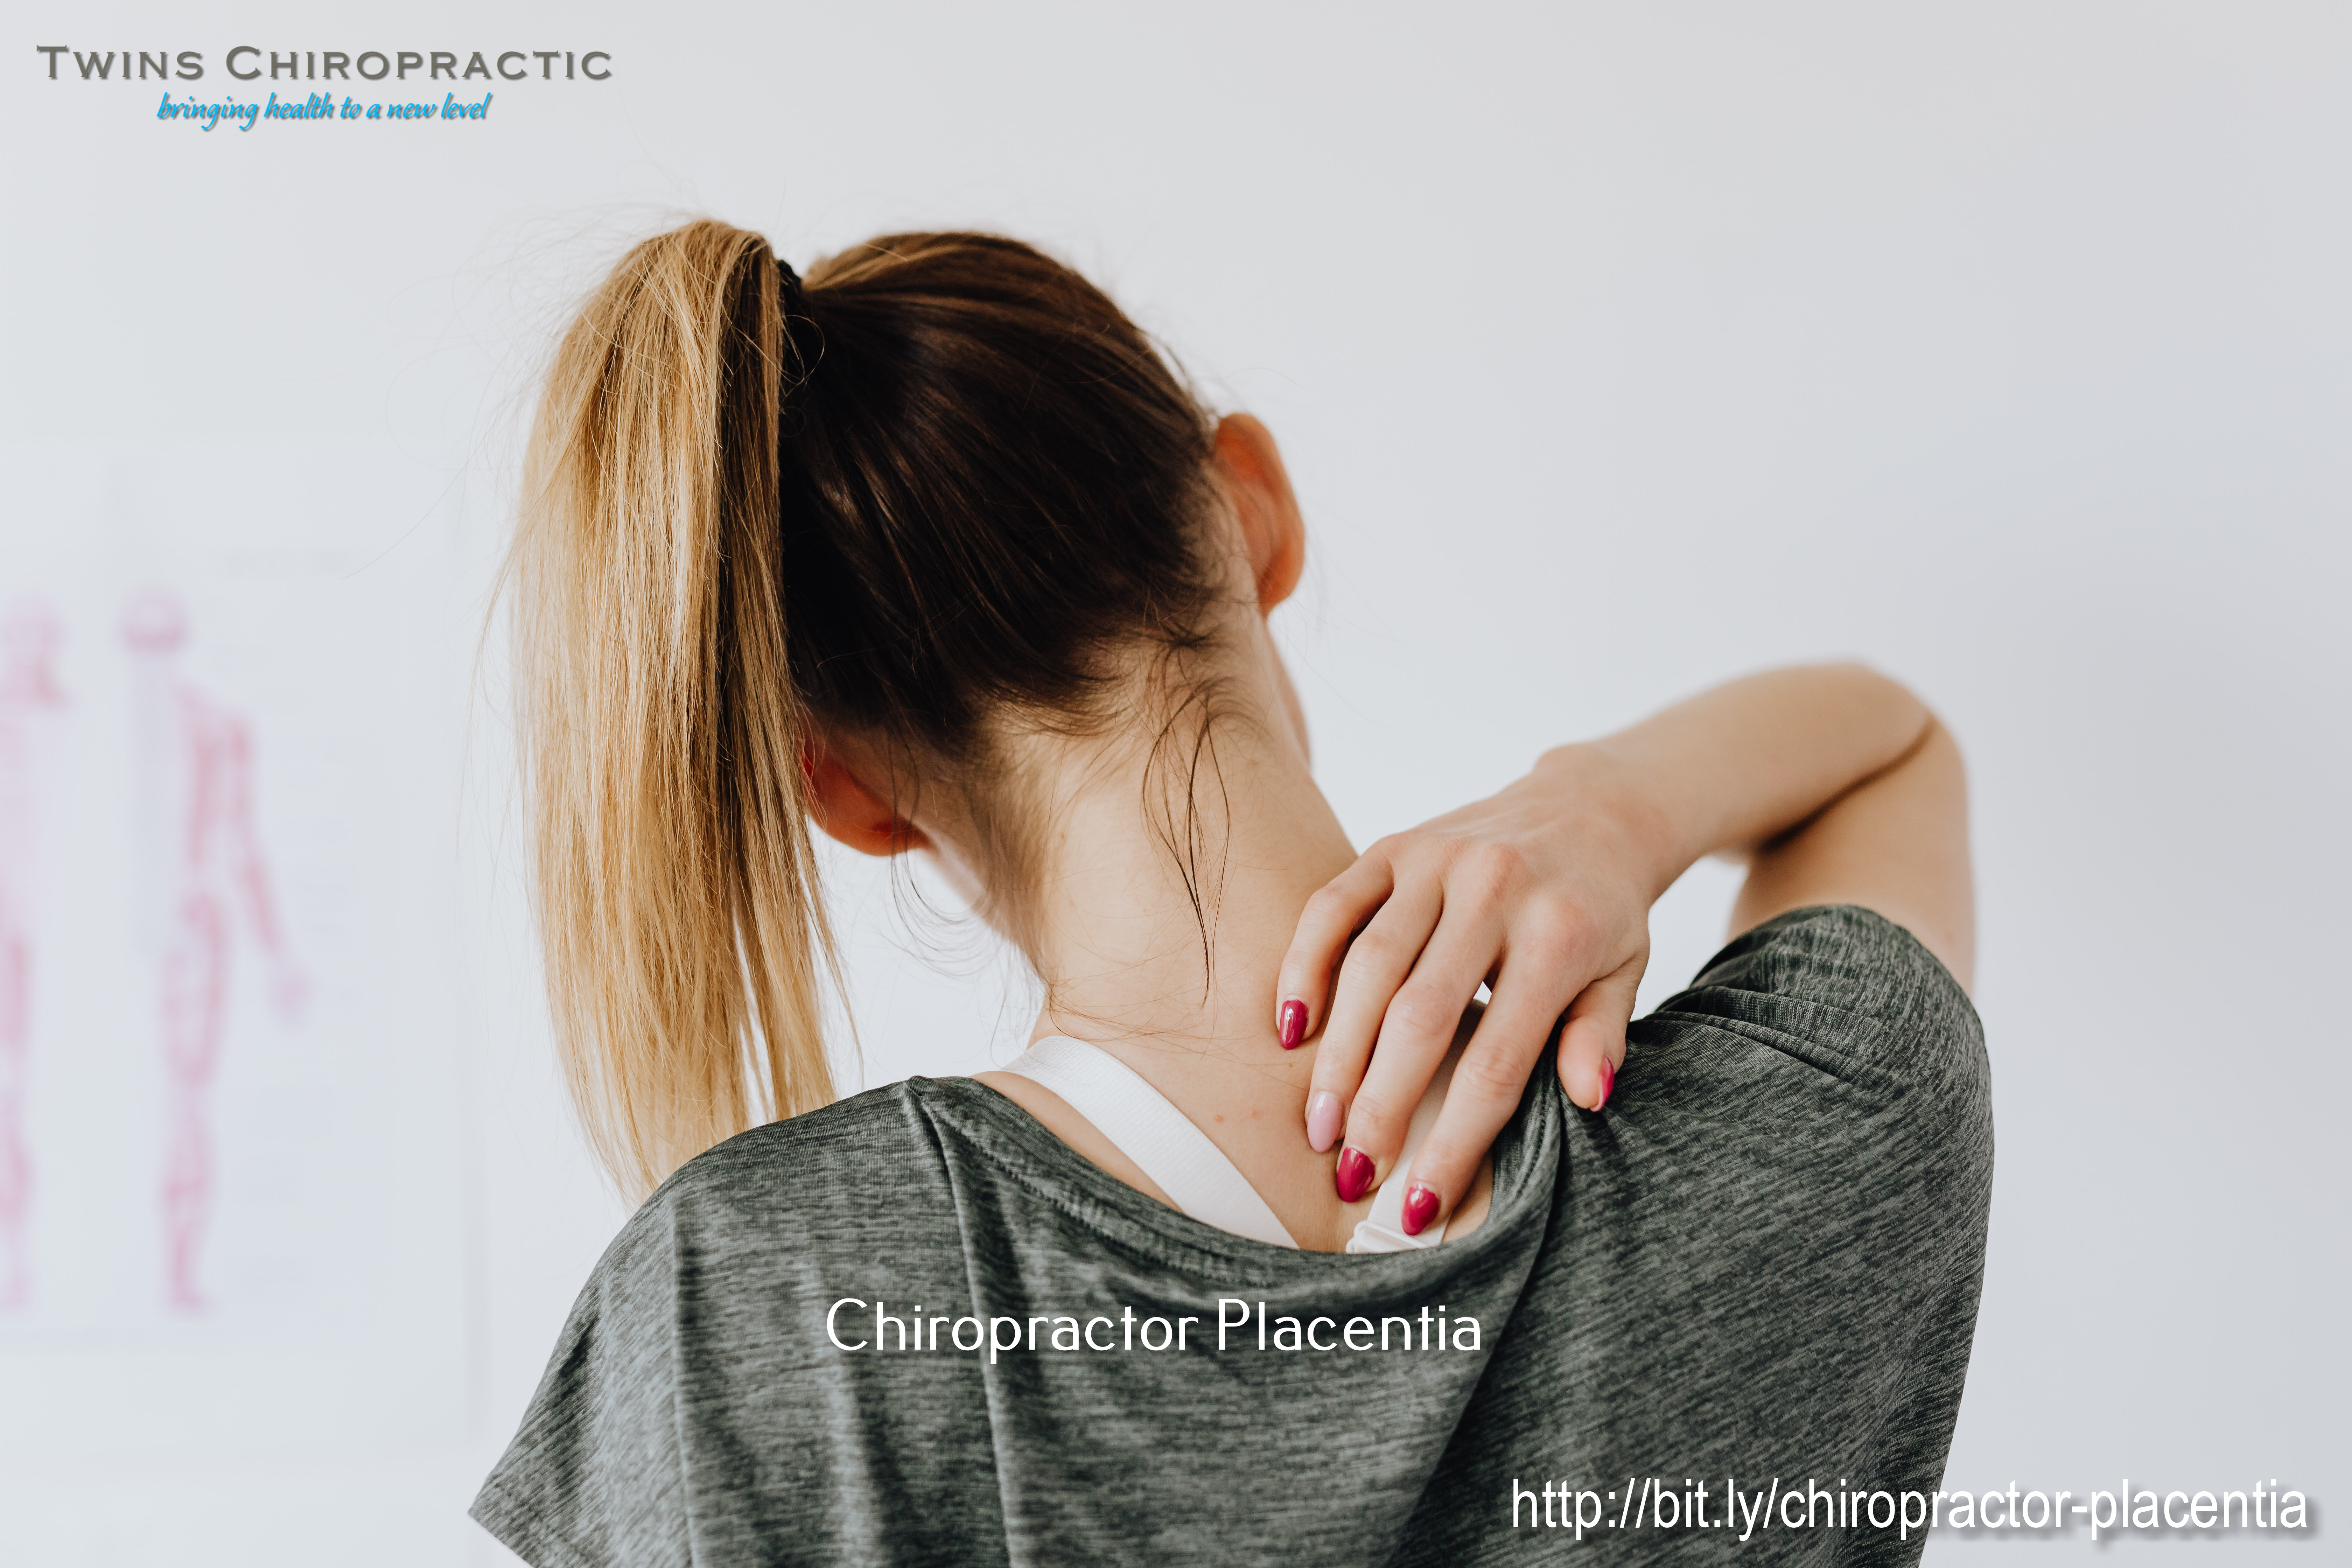 Twins Chiropractic (Placentia) (M2) (CID) - 5